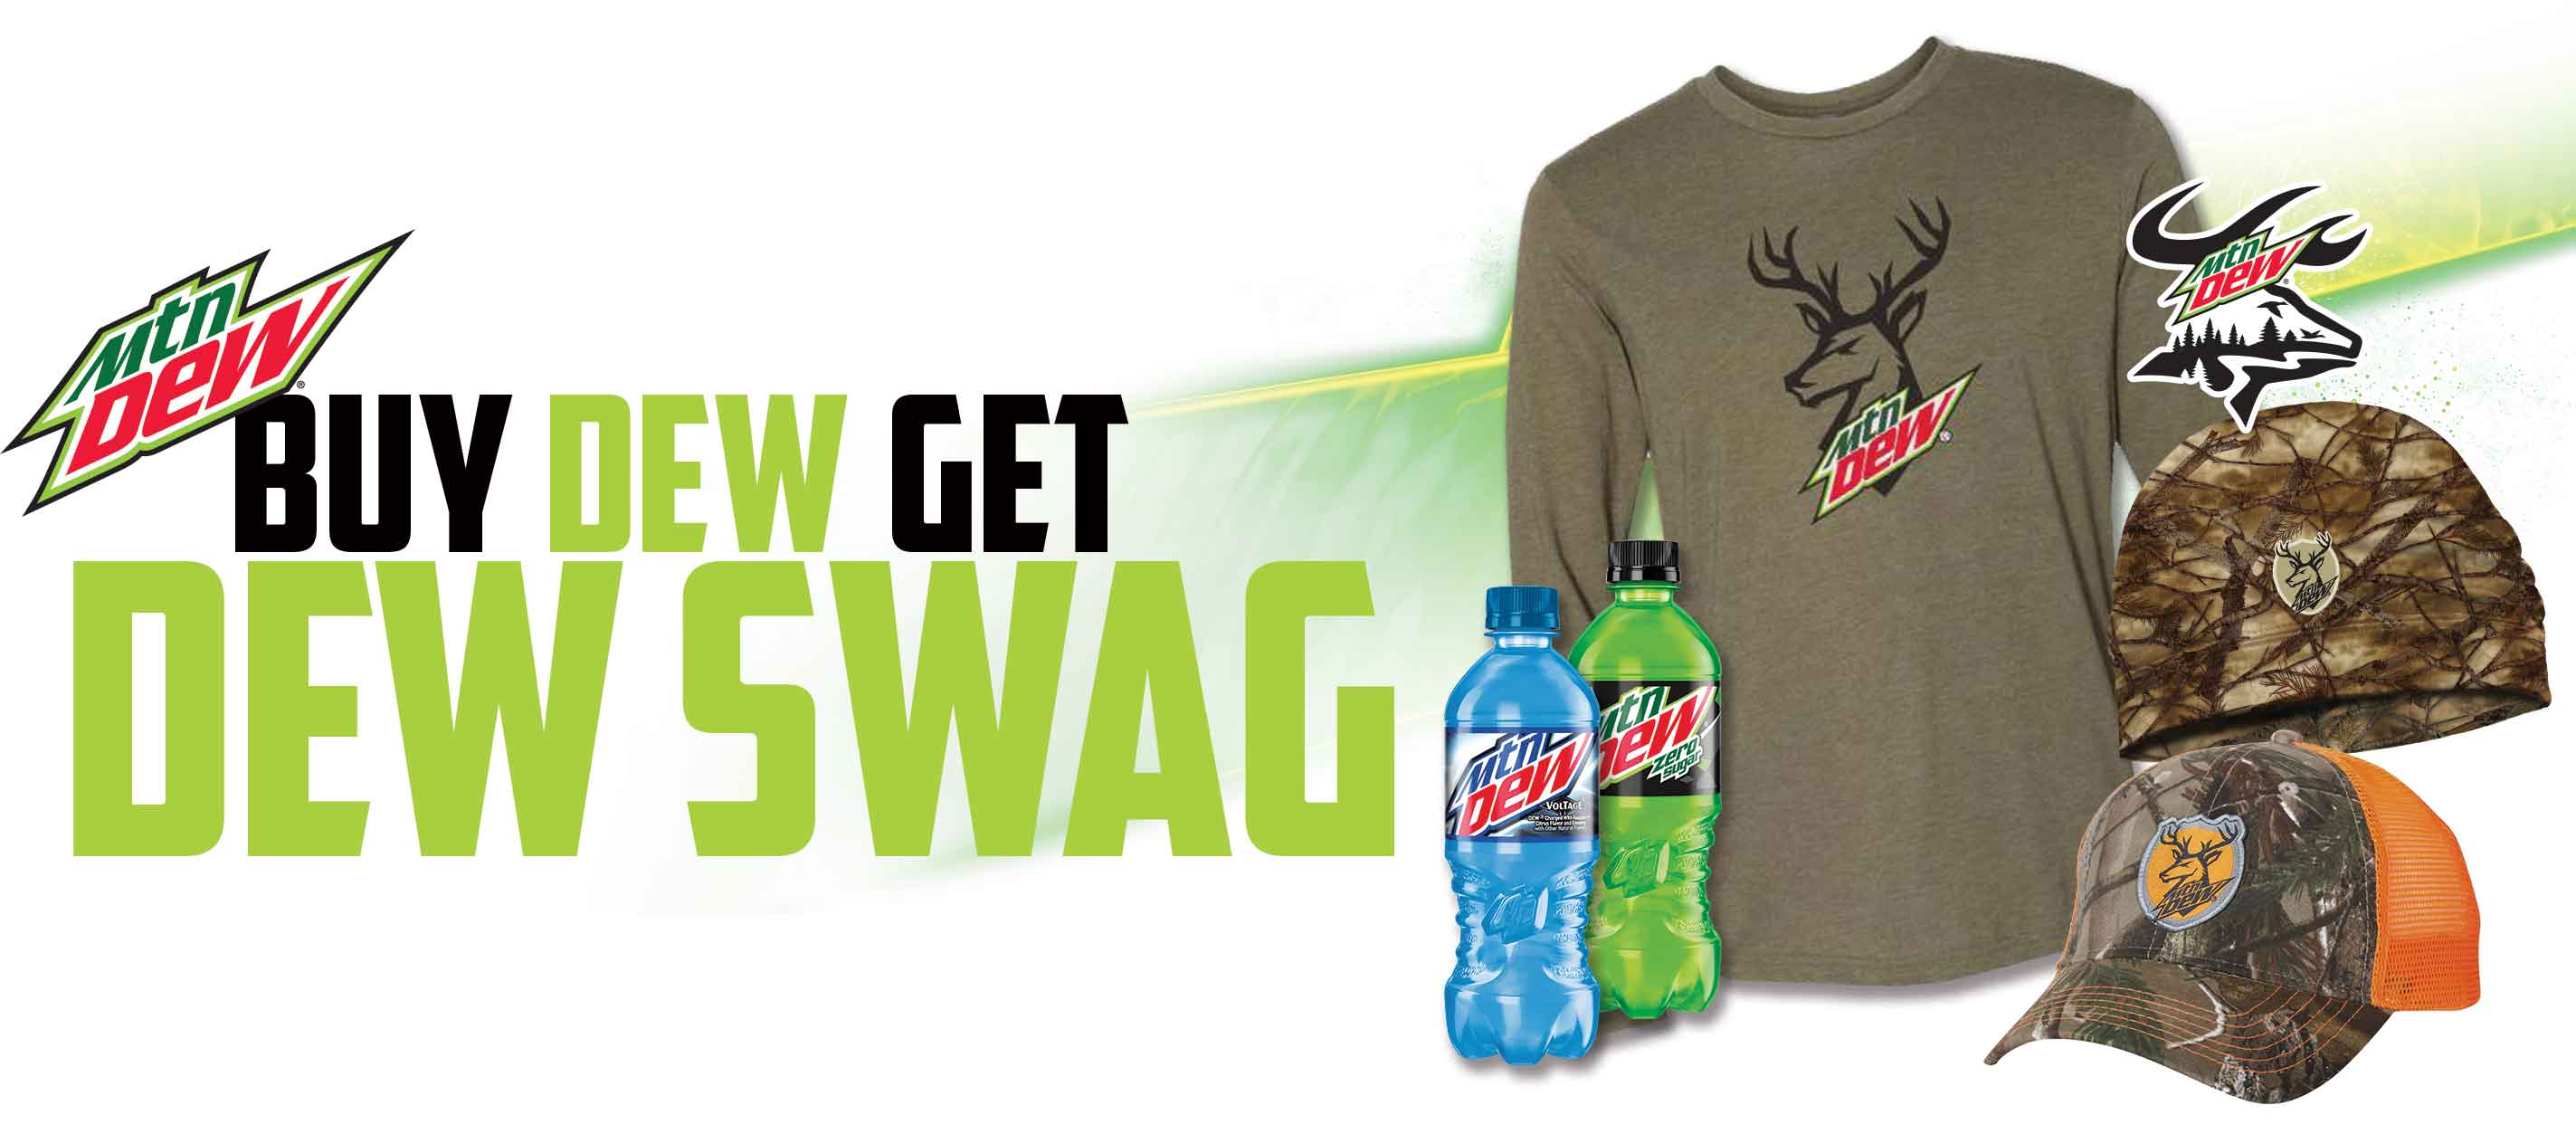 Get-Dew-Swag-header.jpg